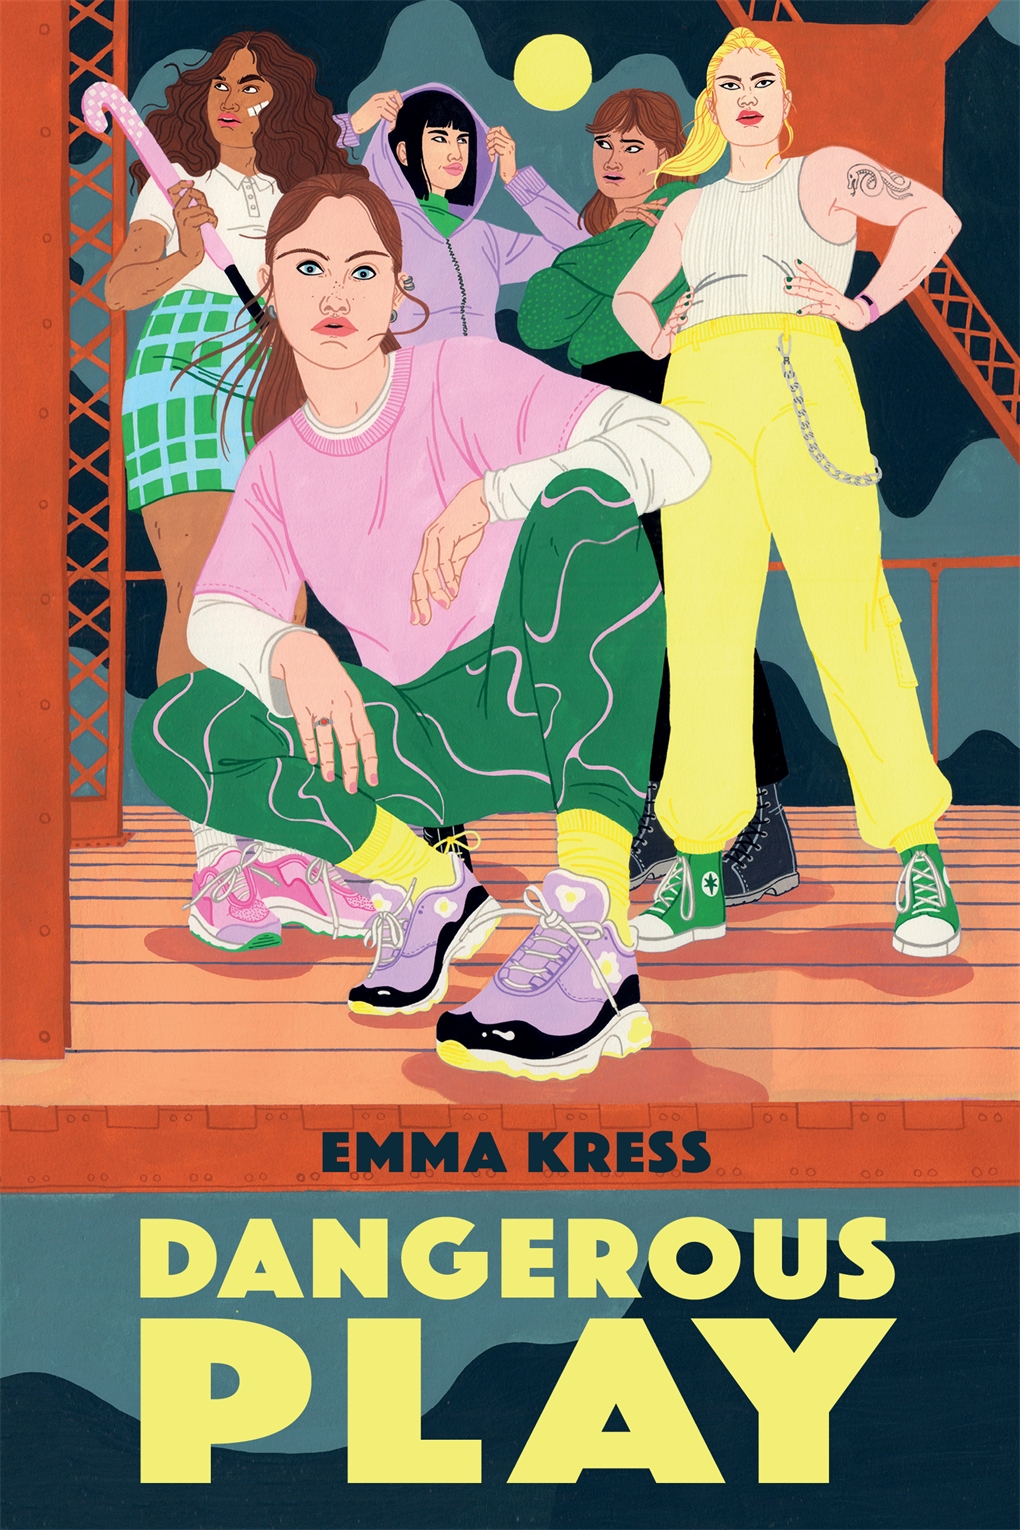 Interior book image for Dangerous Play